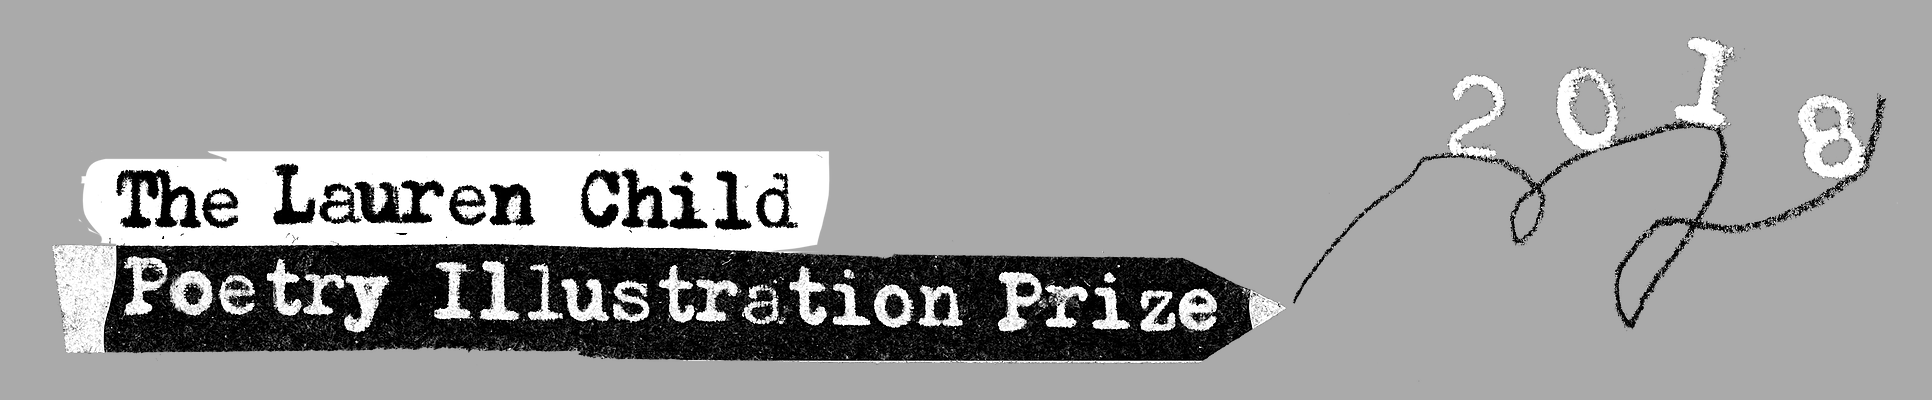 The Lauren Child Poetry illustration prize 2018.png